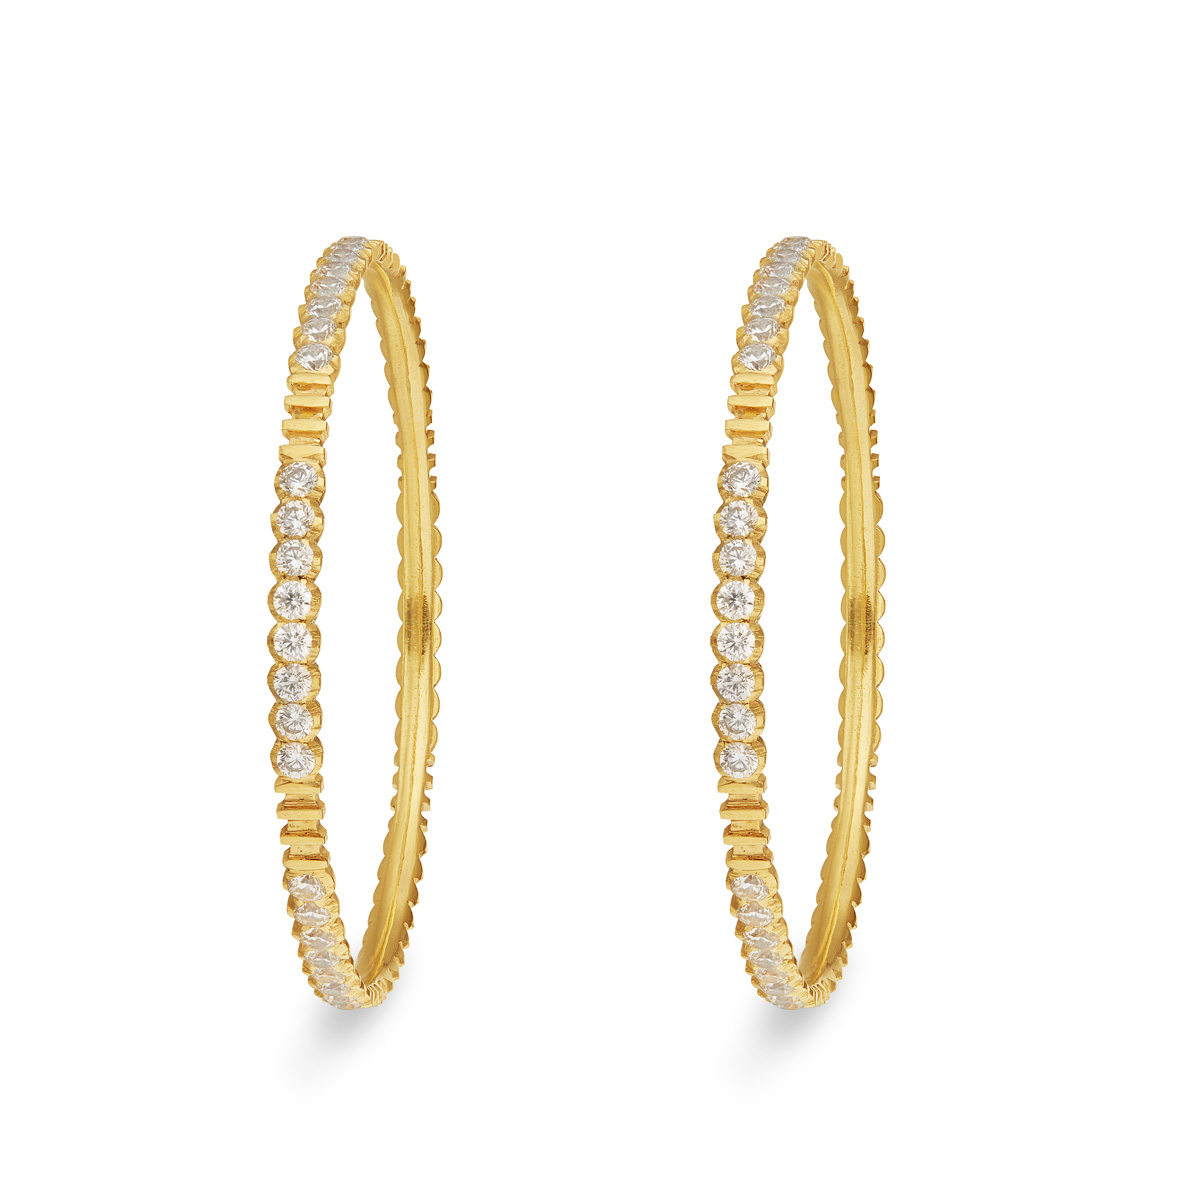 Handcrafted CZ Bangles